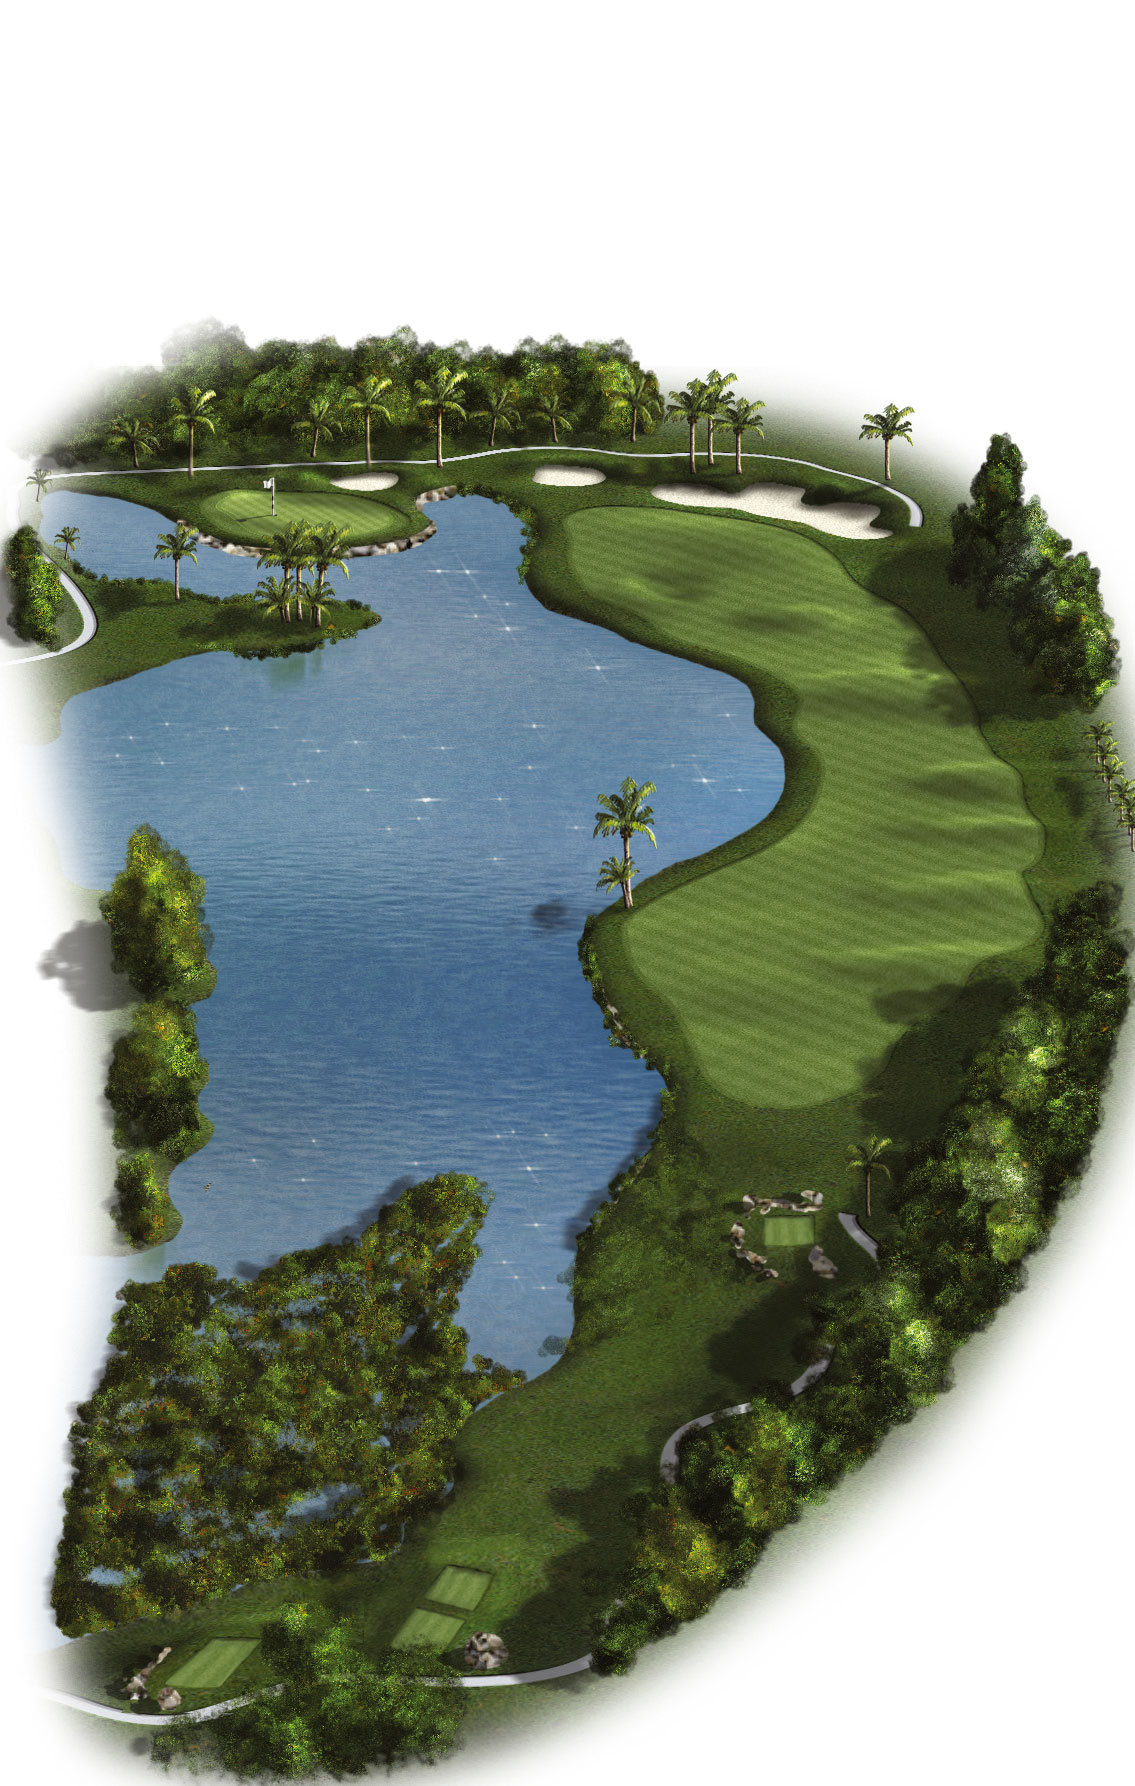 6th Hole - Par 5 (461 meters/507 yards)